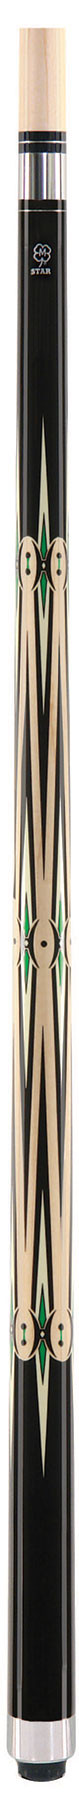 McDermott Star S61 Pool Cue - Black/Tan